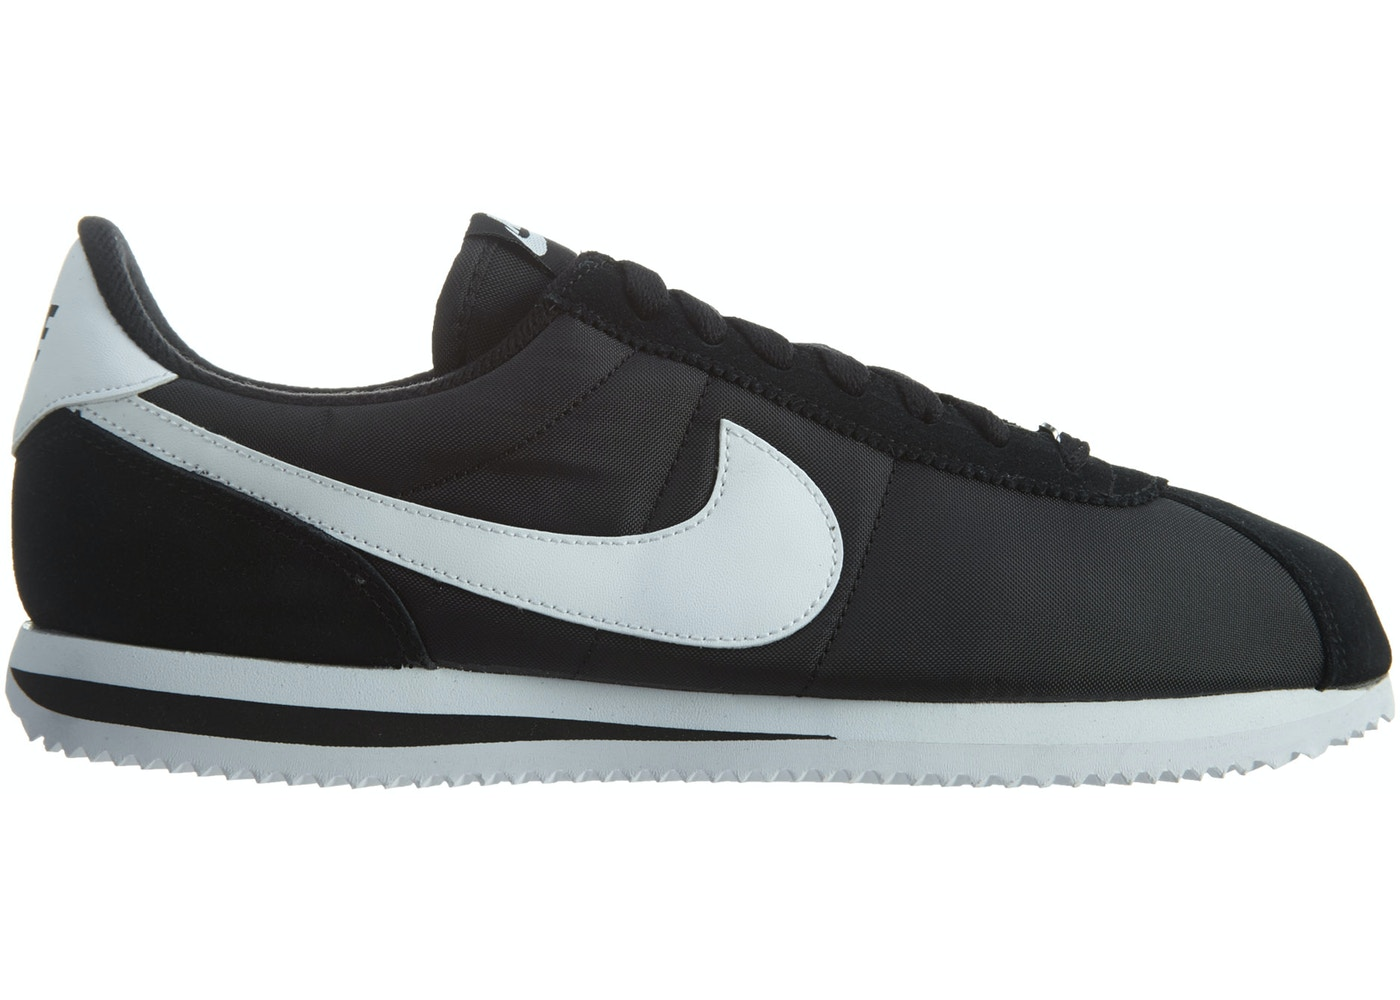 new product 397c8 7dca2 Nike Cortez Basic Nylon Black White-Metallic Silver